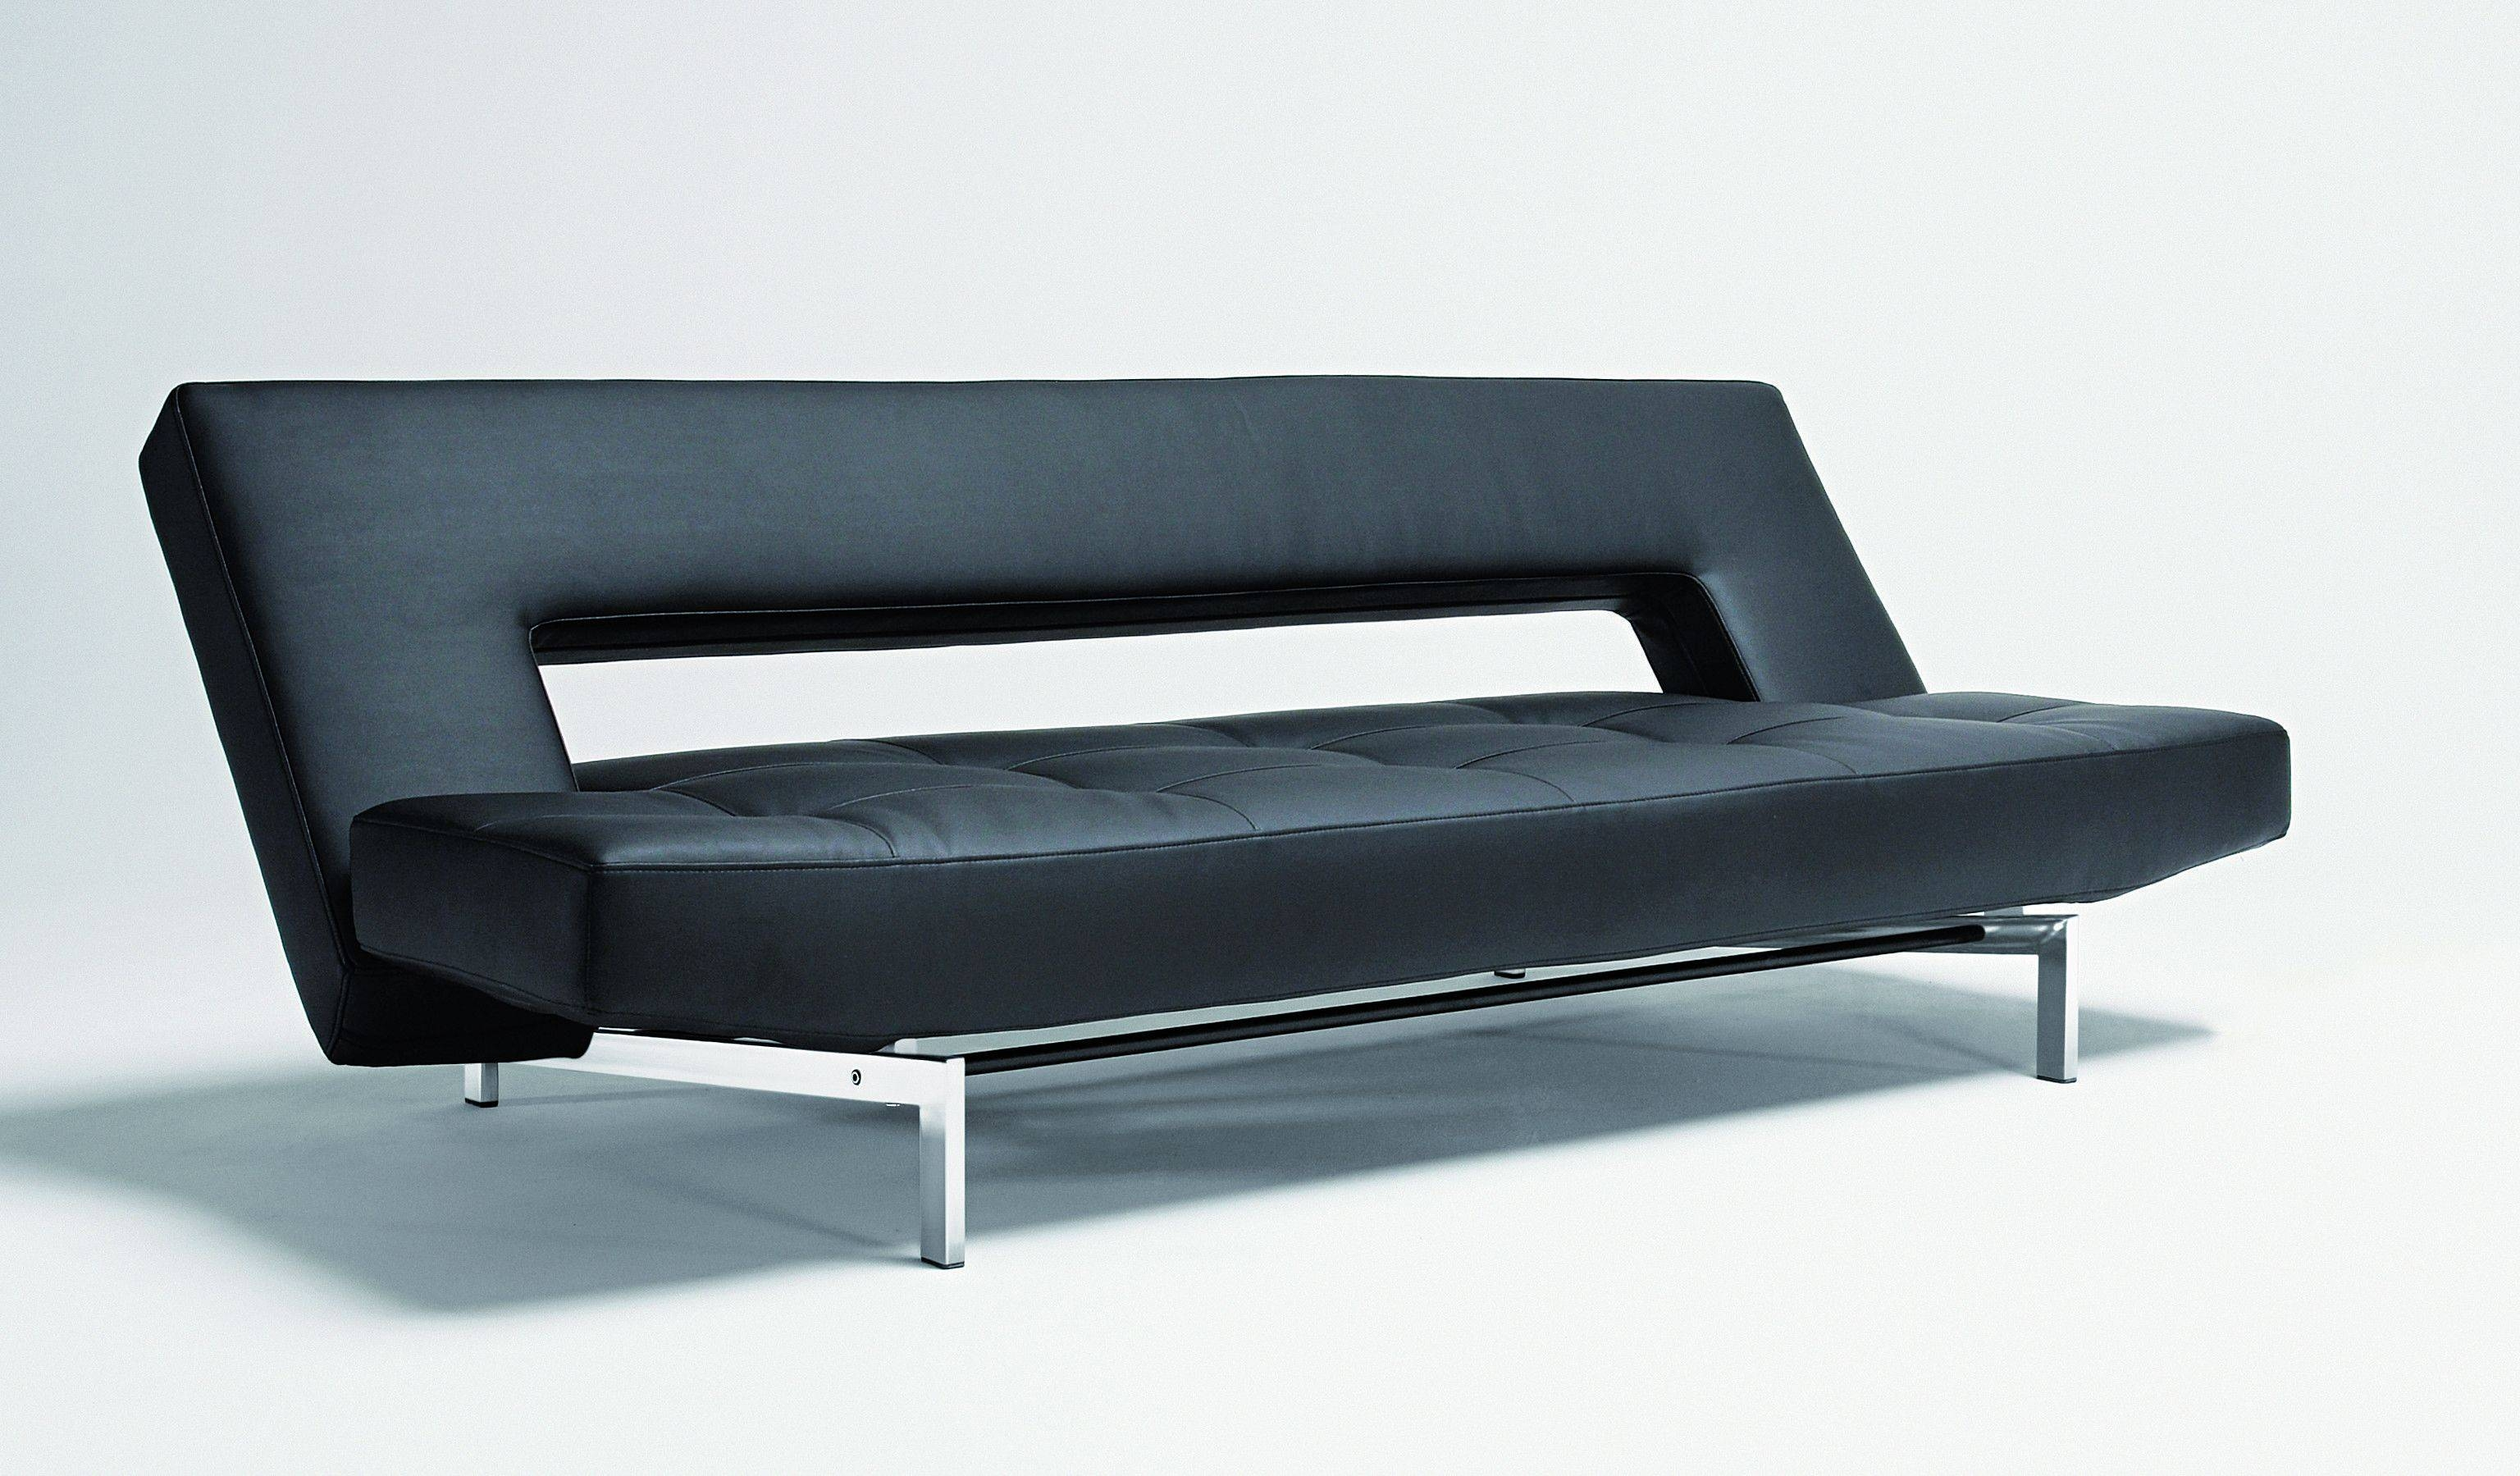 Sofas Center : Carlyle Sofa Beds Reviews Carlisle Gray Nyc with Carlyle Sofa Beds (Image 6 of 15)